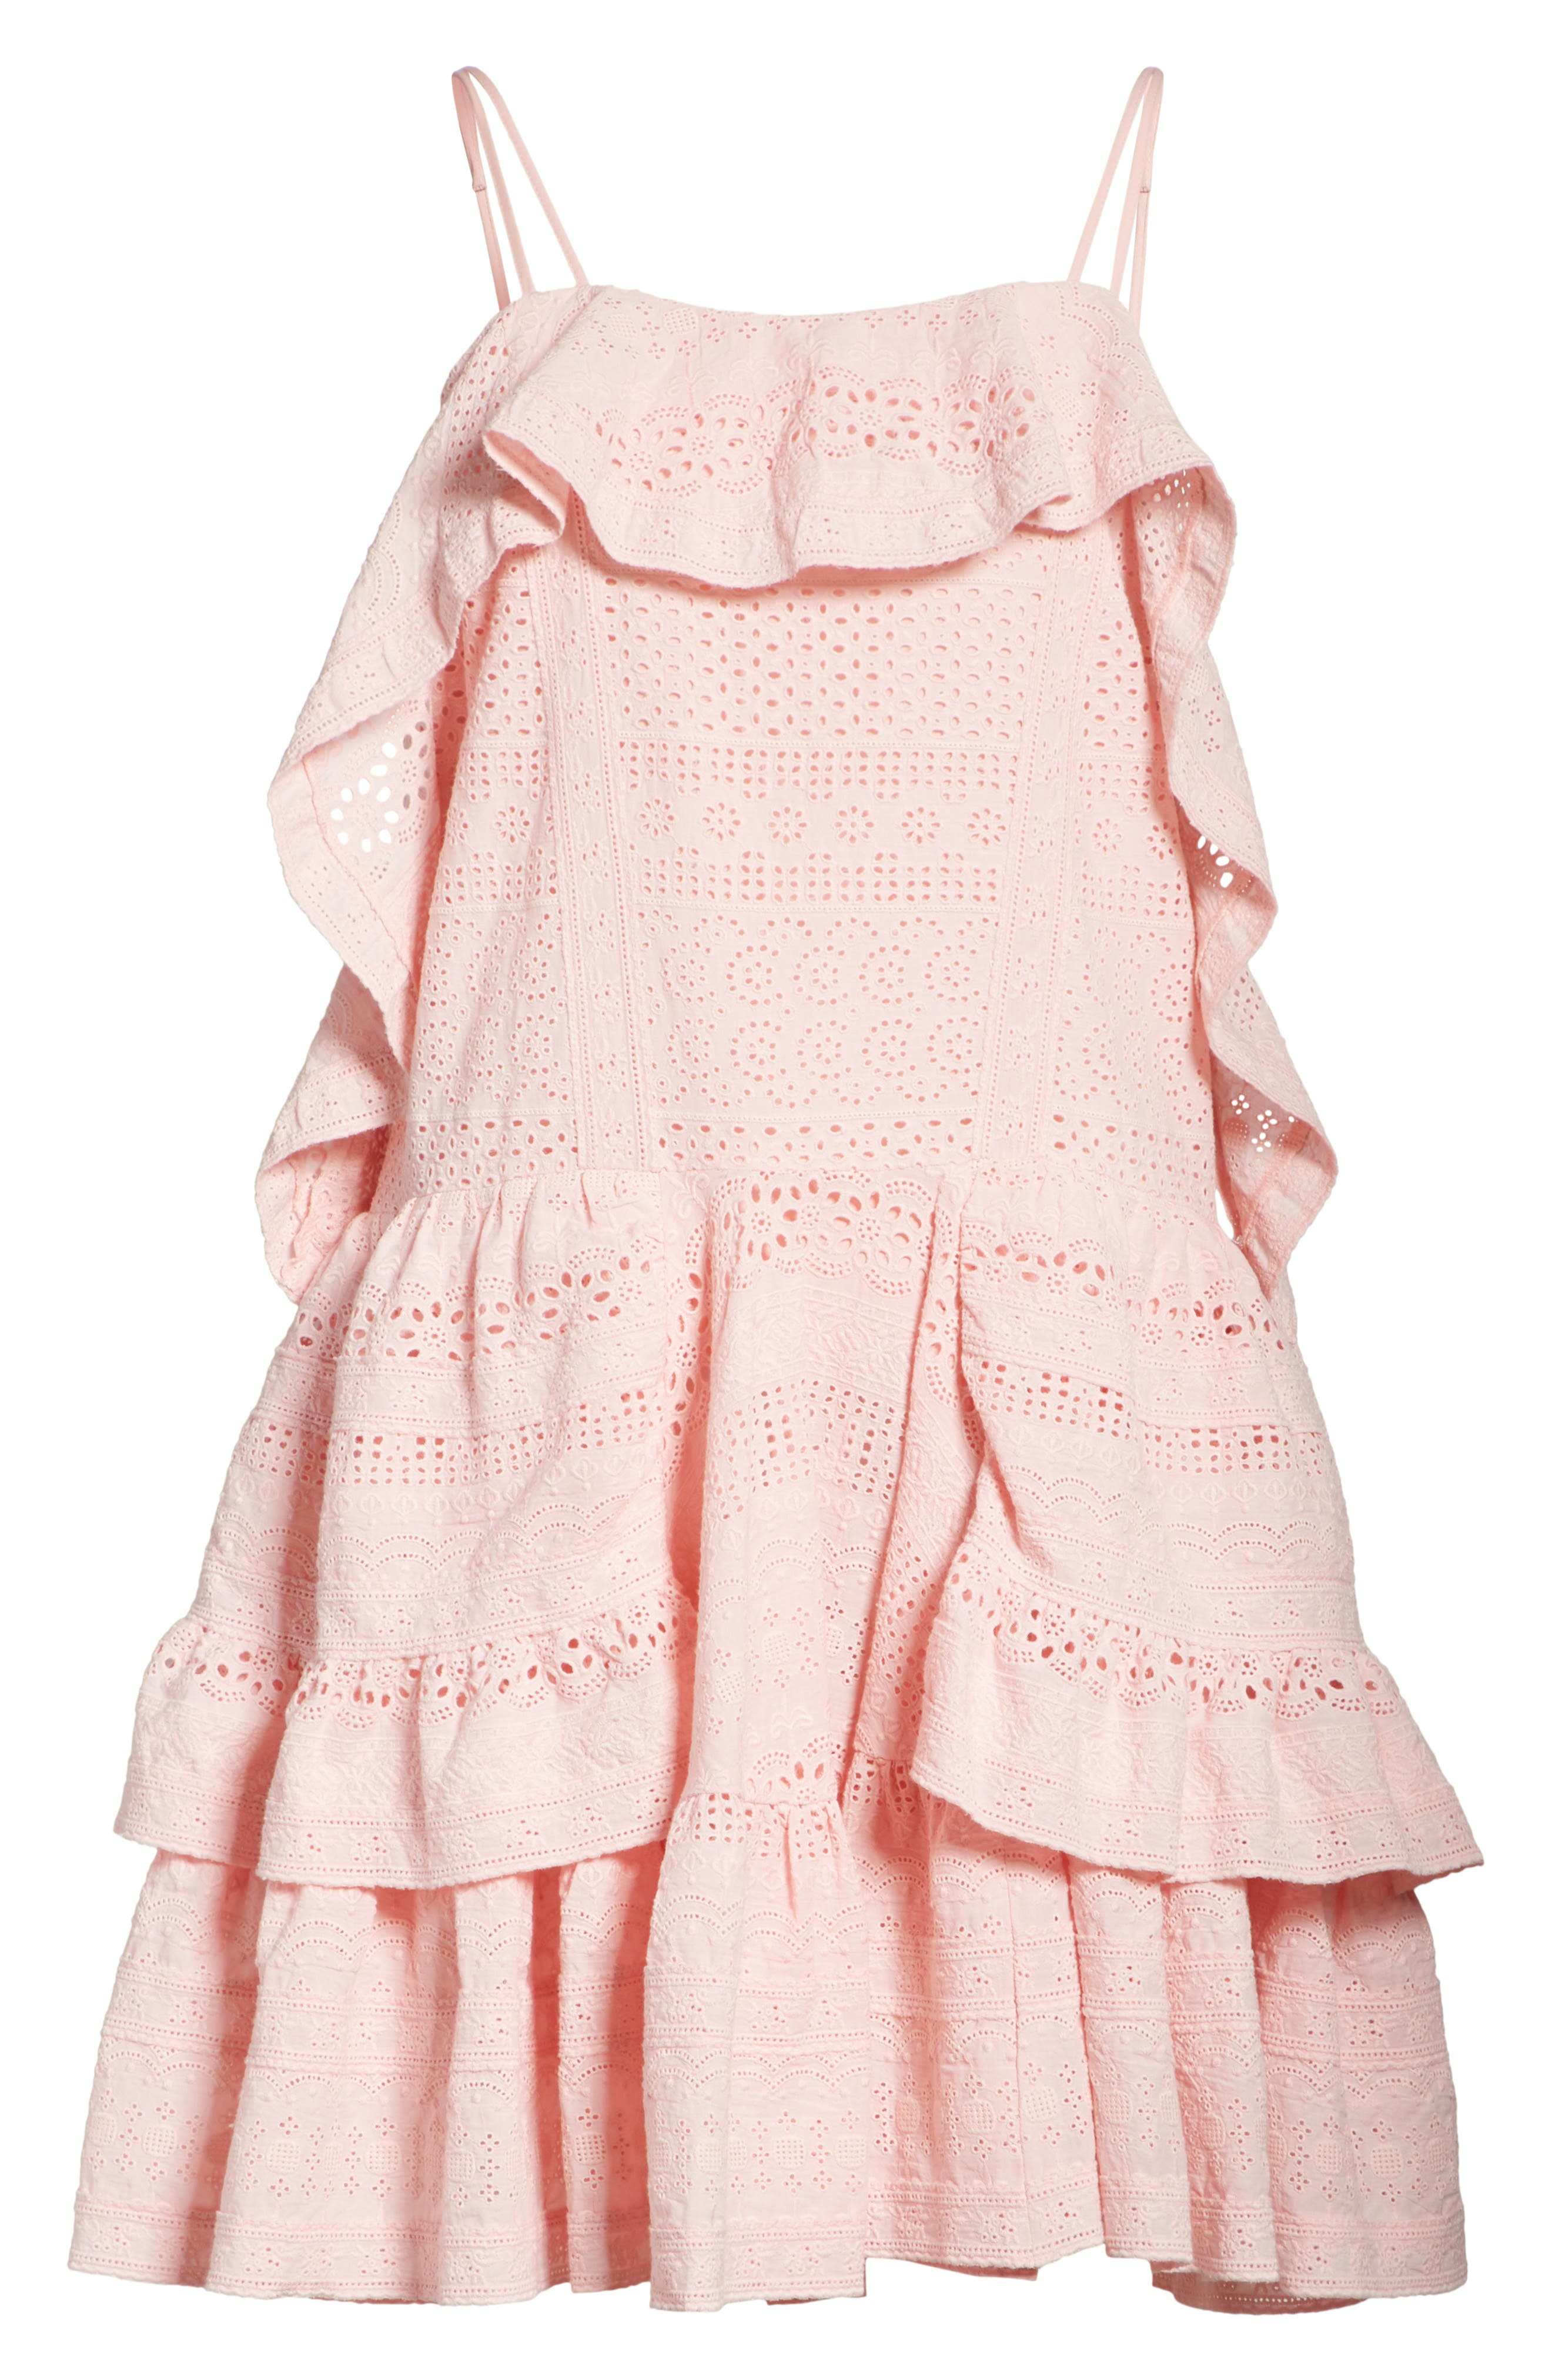 Deconstructed Broderie Dress,                             Alternate thumbnail 6, color,                             Pink